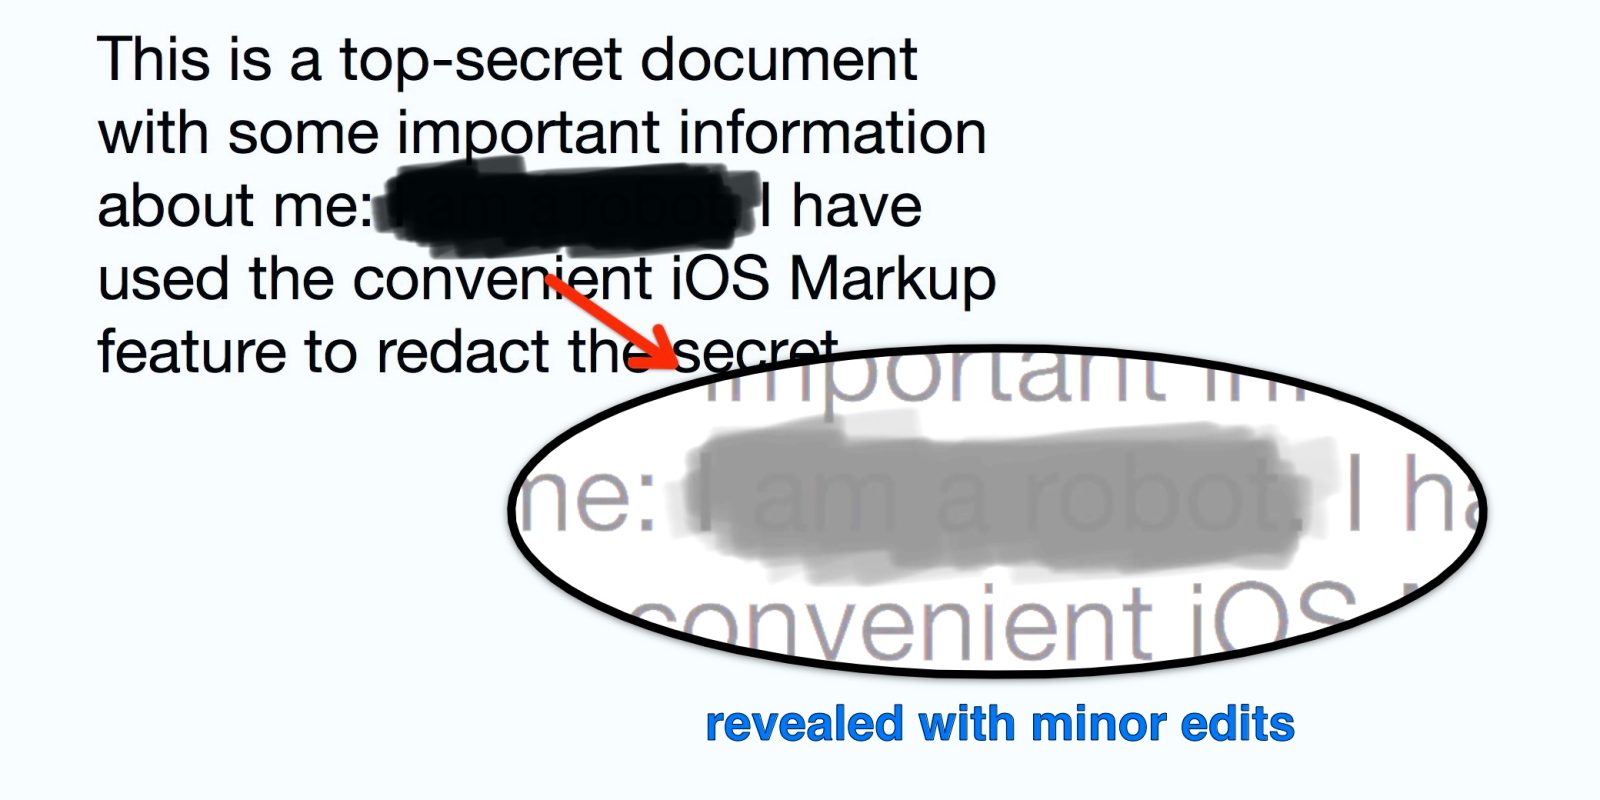 PSA: iOS Markup is not designed to be a redaction tool for